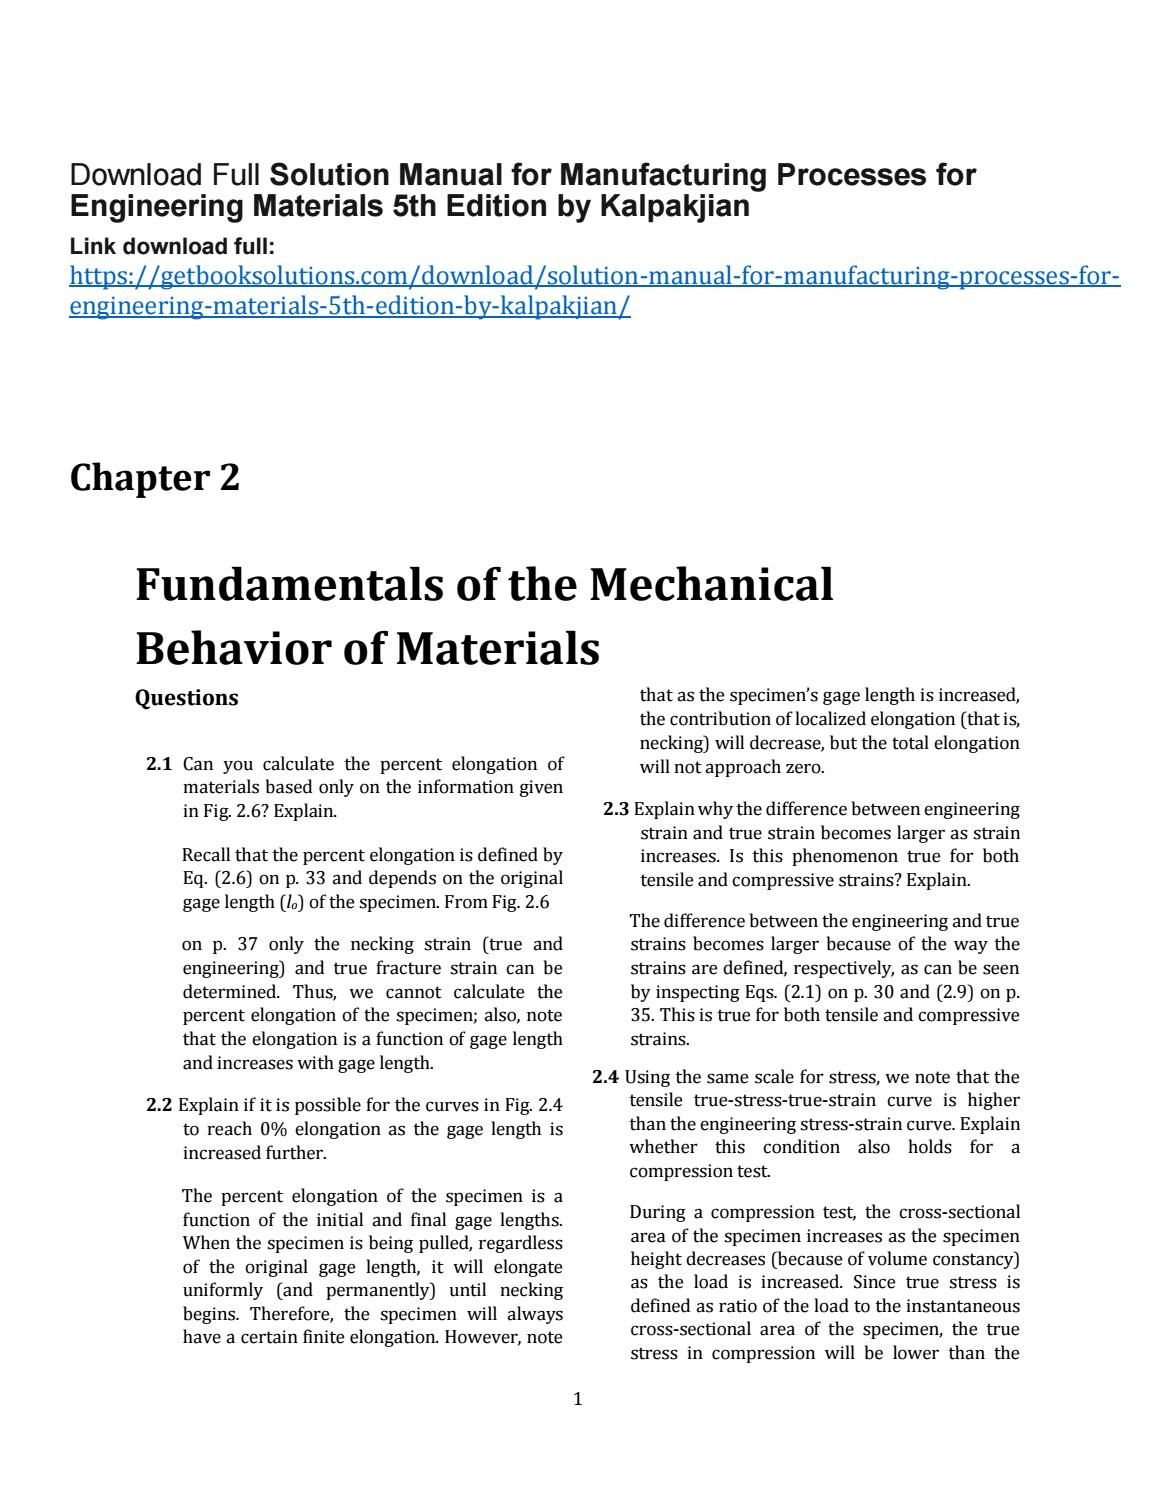 Download solution manual for manufacturing processes for engineering  materials 5th edition by kalpak